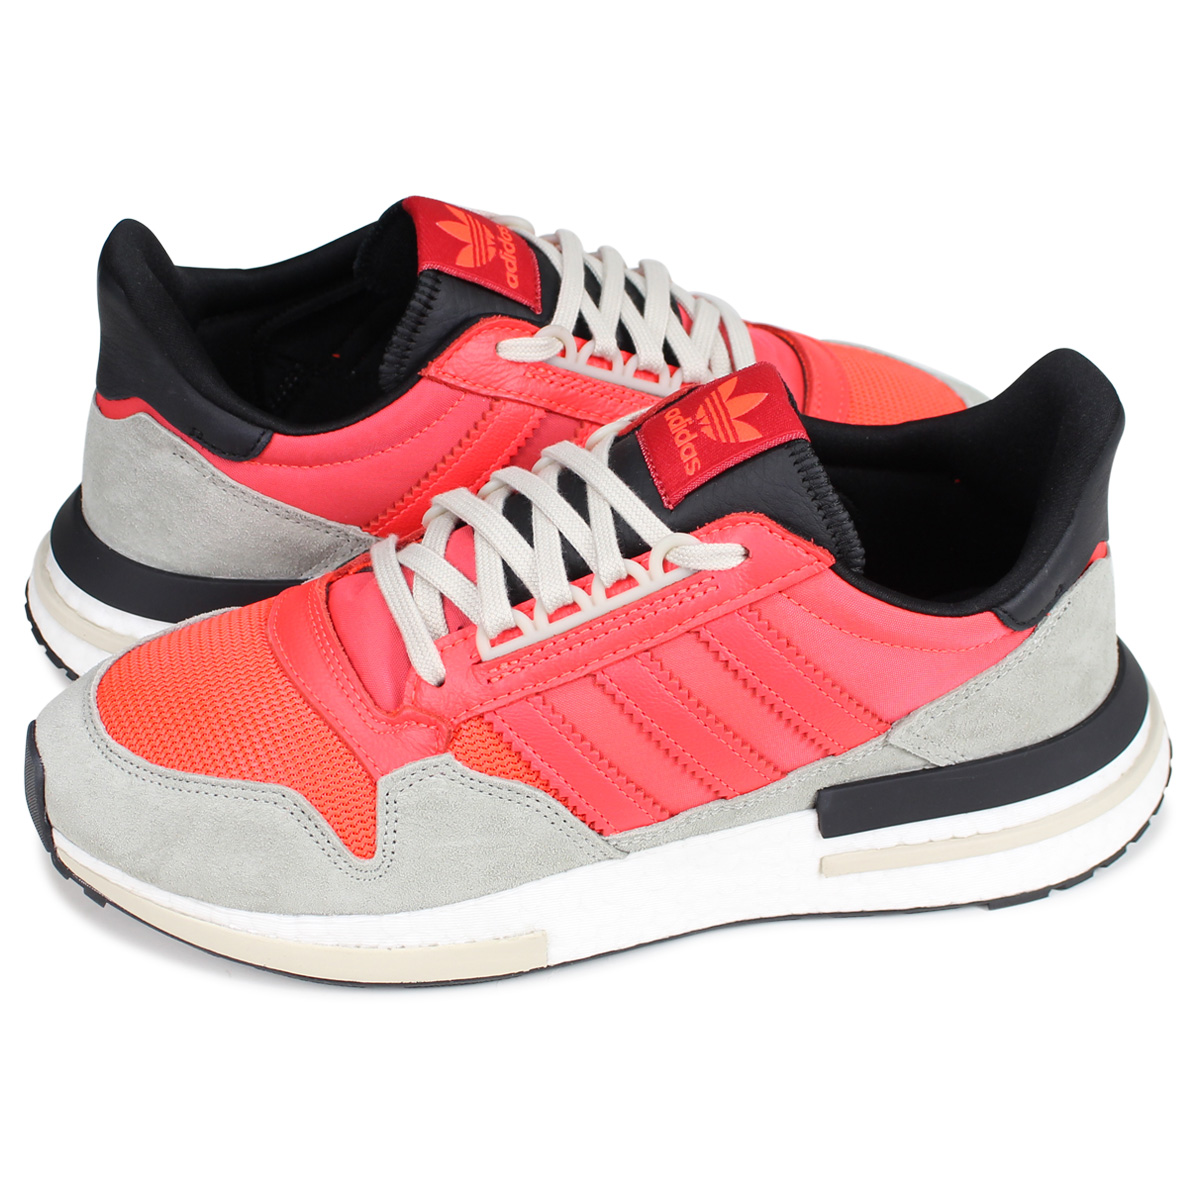 factory price buying now cost charm adidas Originals ZX 500 RM Adidas originals sneakers men orange DB2739 [195]